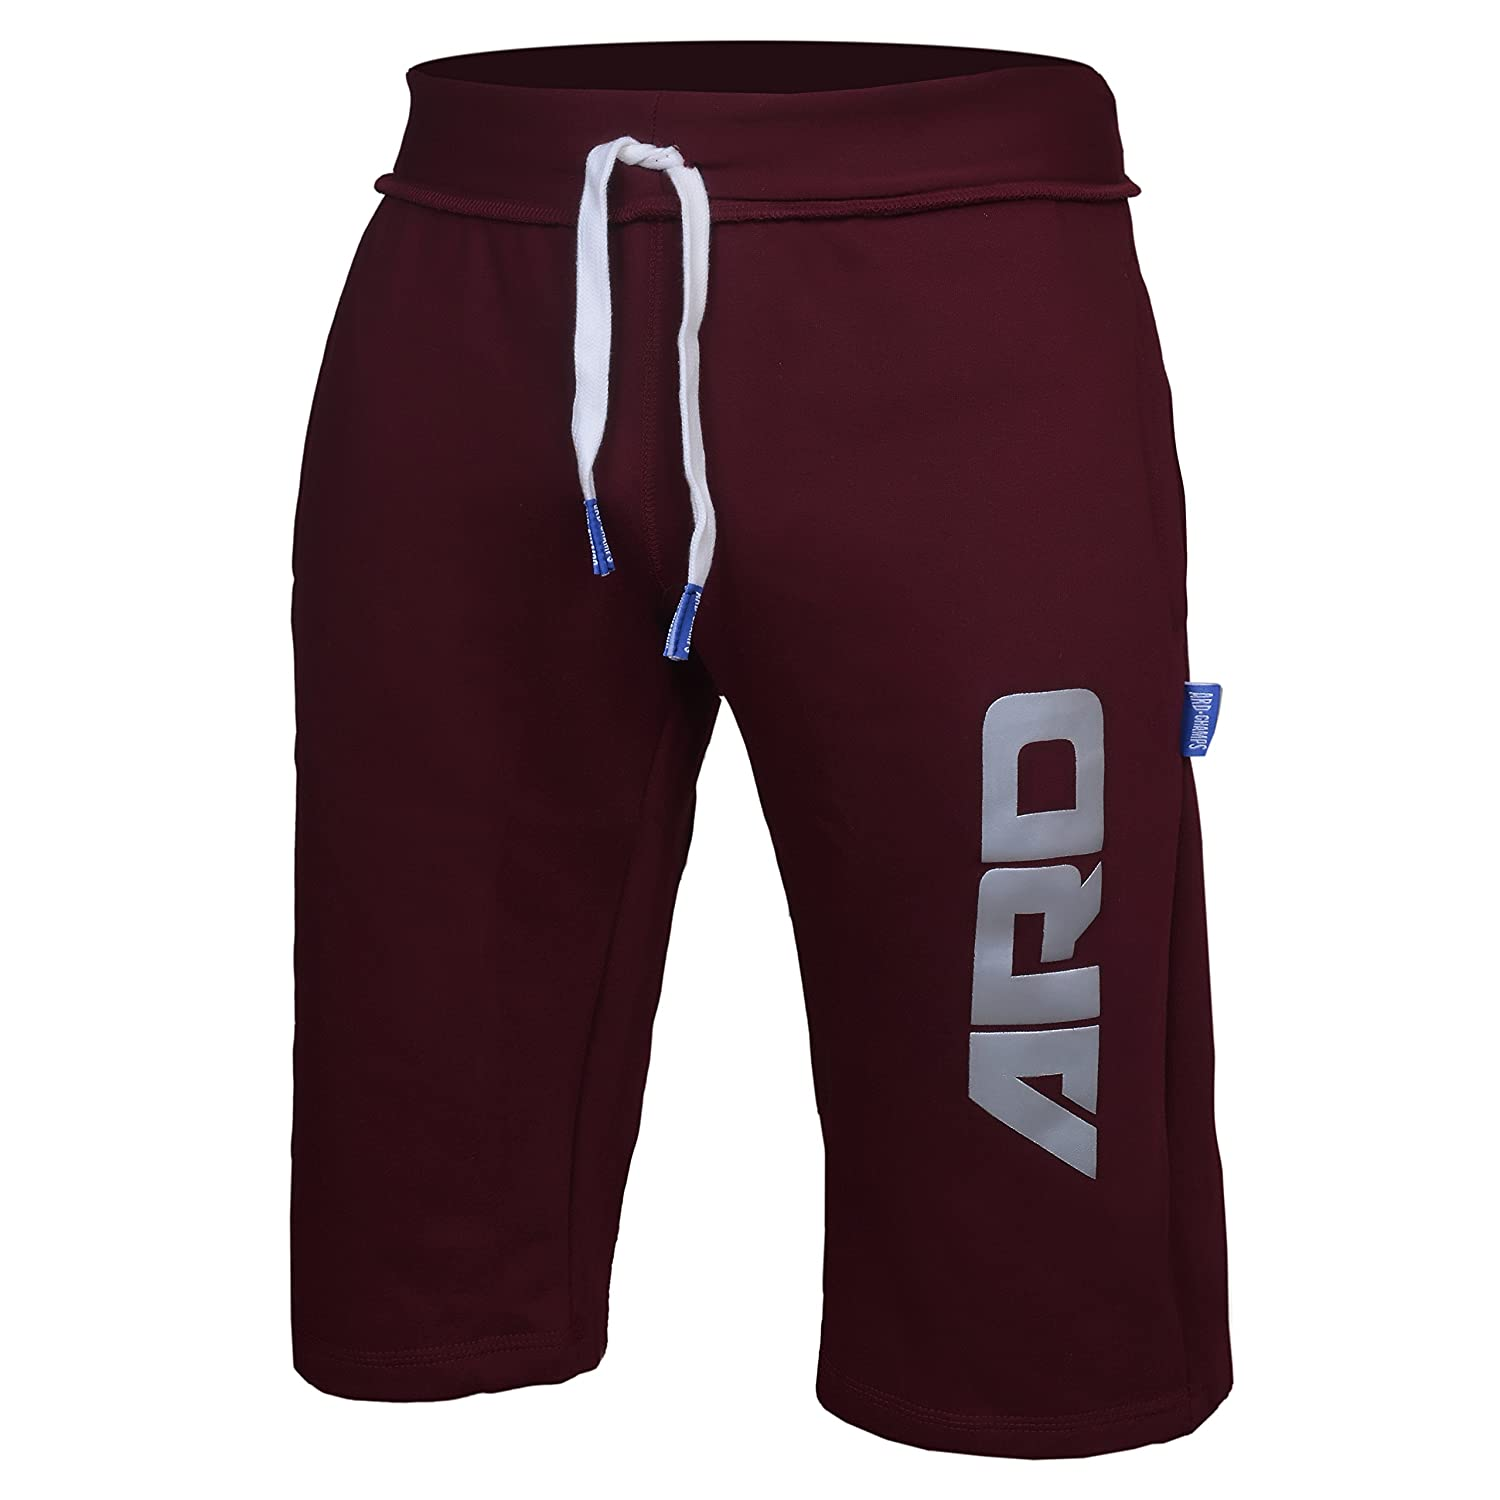 ARD-Champs Mens Cotton Fleece Shorts Jogging Casual Home Wear MMA Boxing(S-2XL) ARD CHAMPS